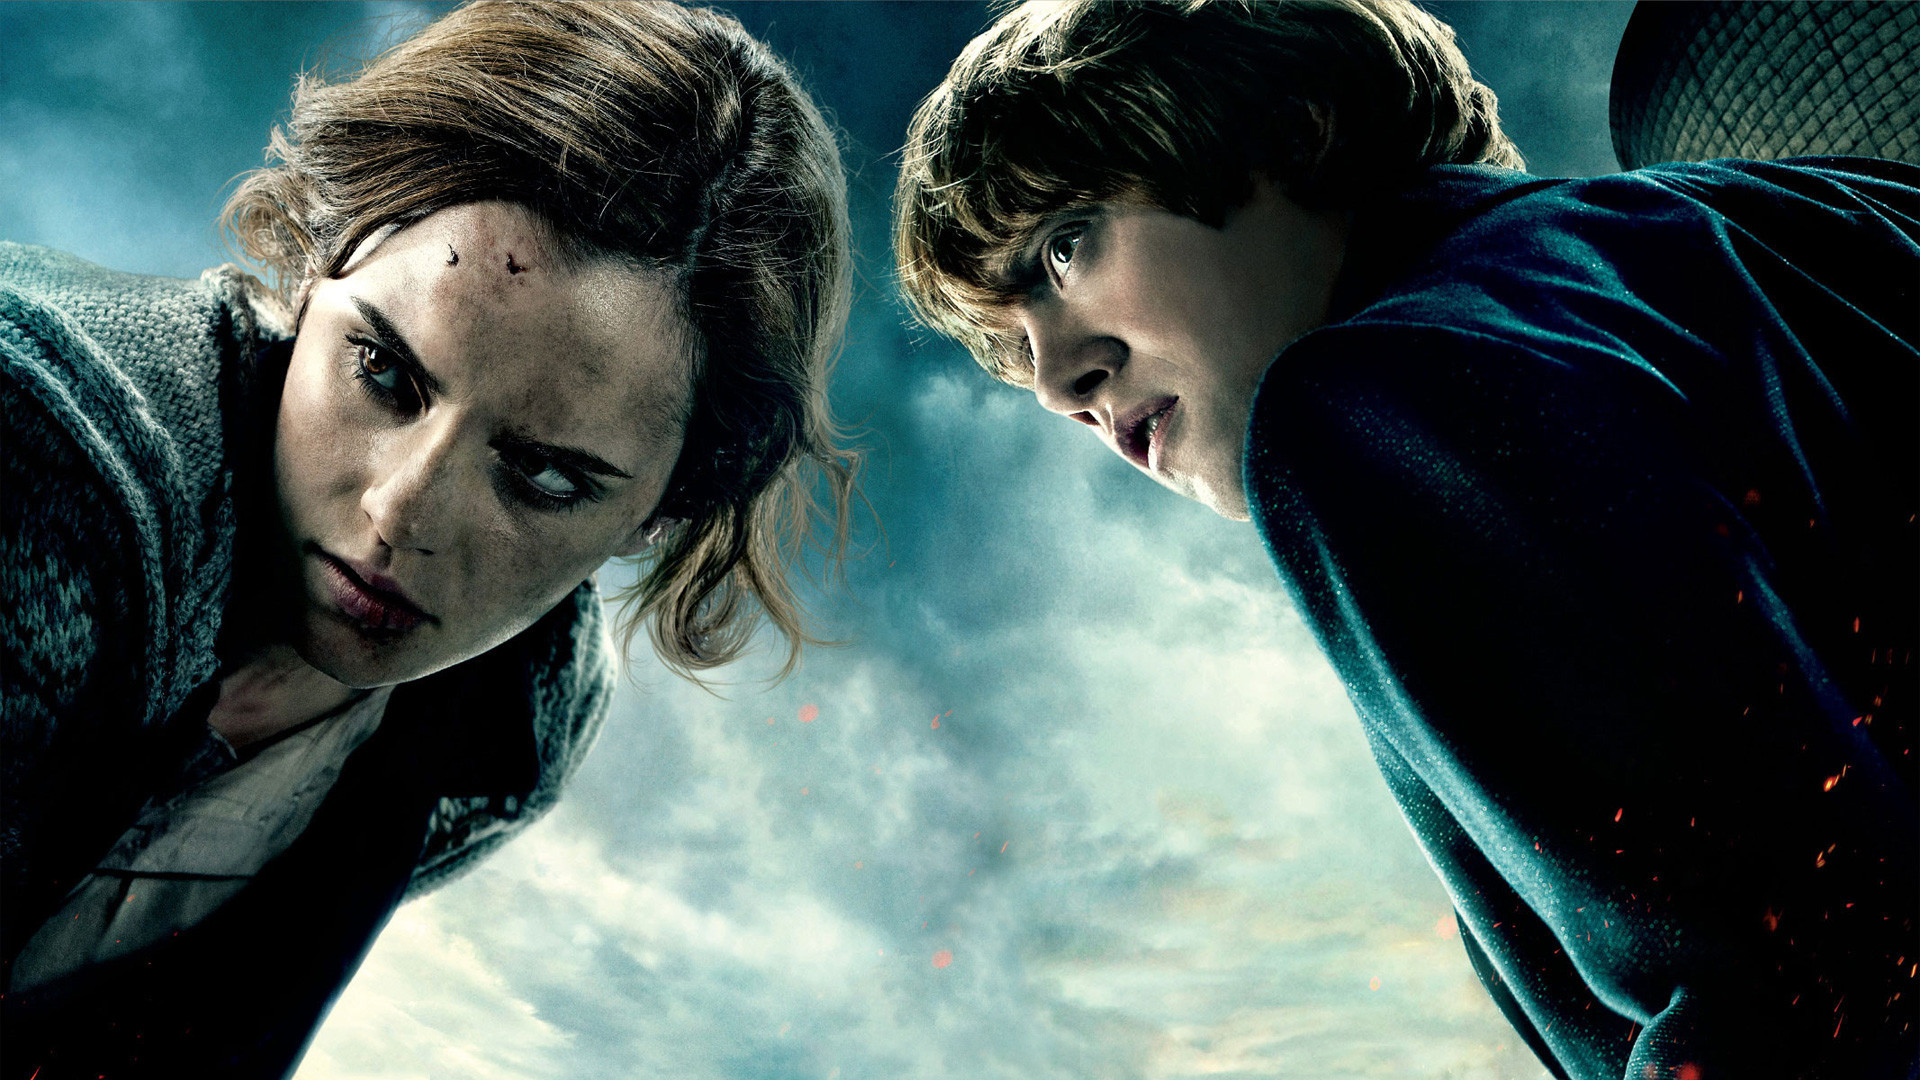 Harry Potter And The Deathly Hallows: Part 1 Full HD